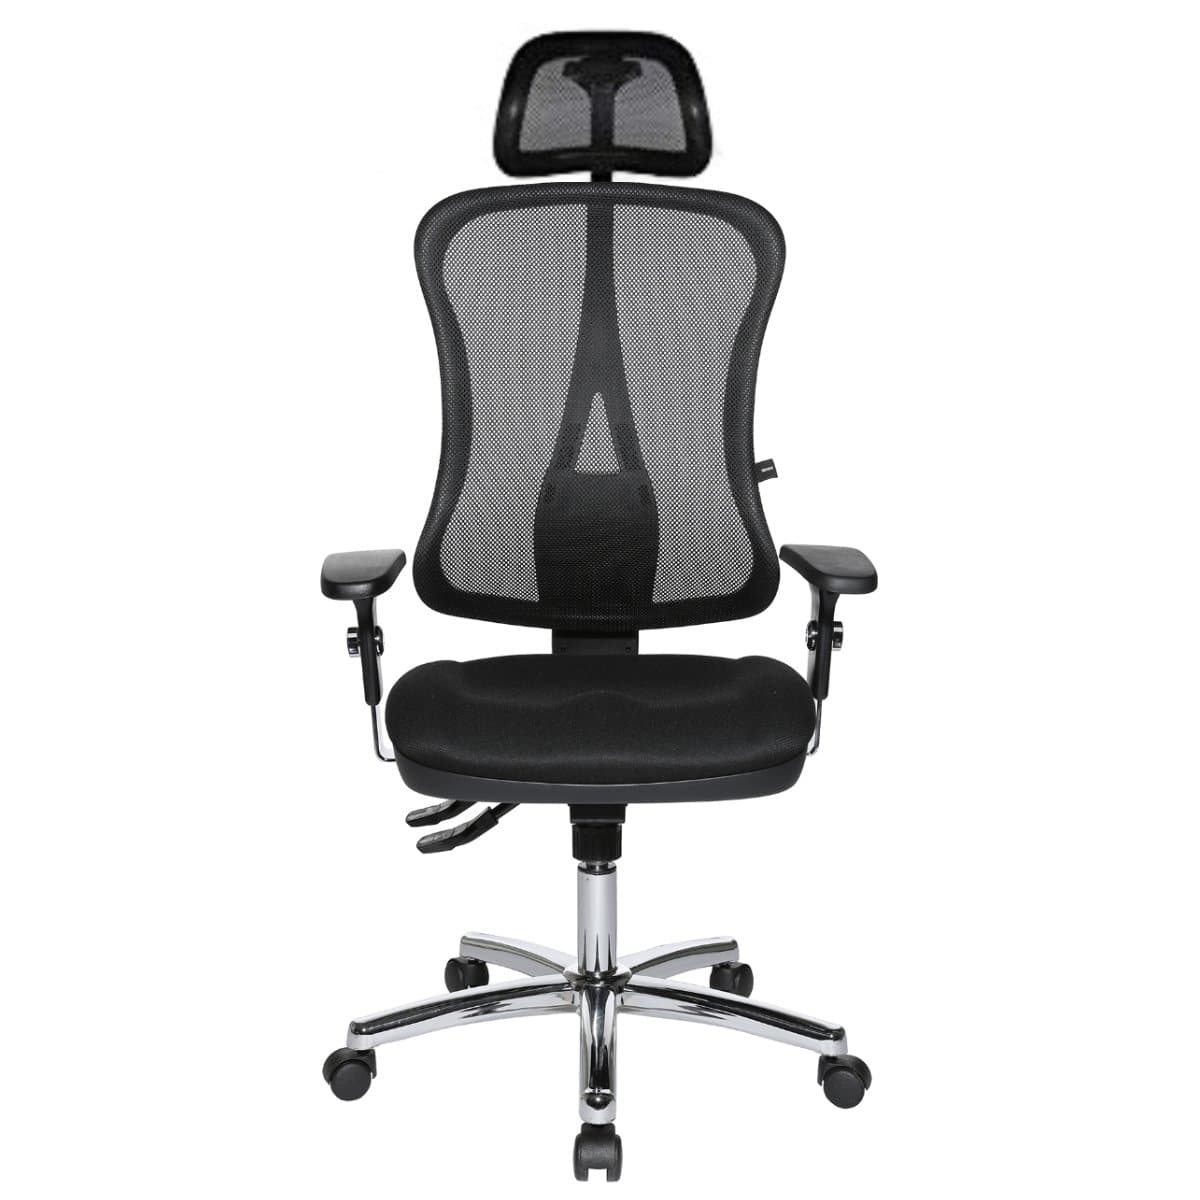 Topstar HEAD POINT SY SOMO Mesh Office Chair with Headrest, Mesh/Fabric Black